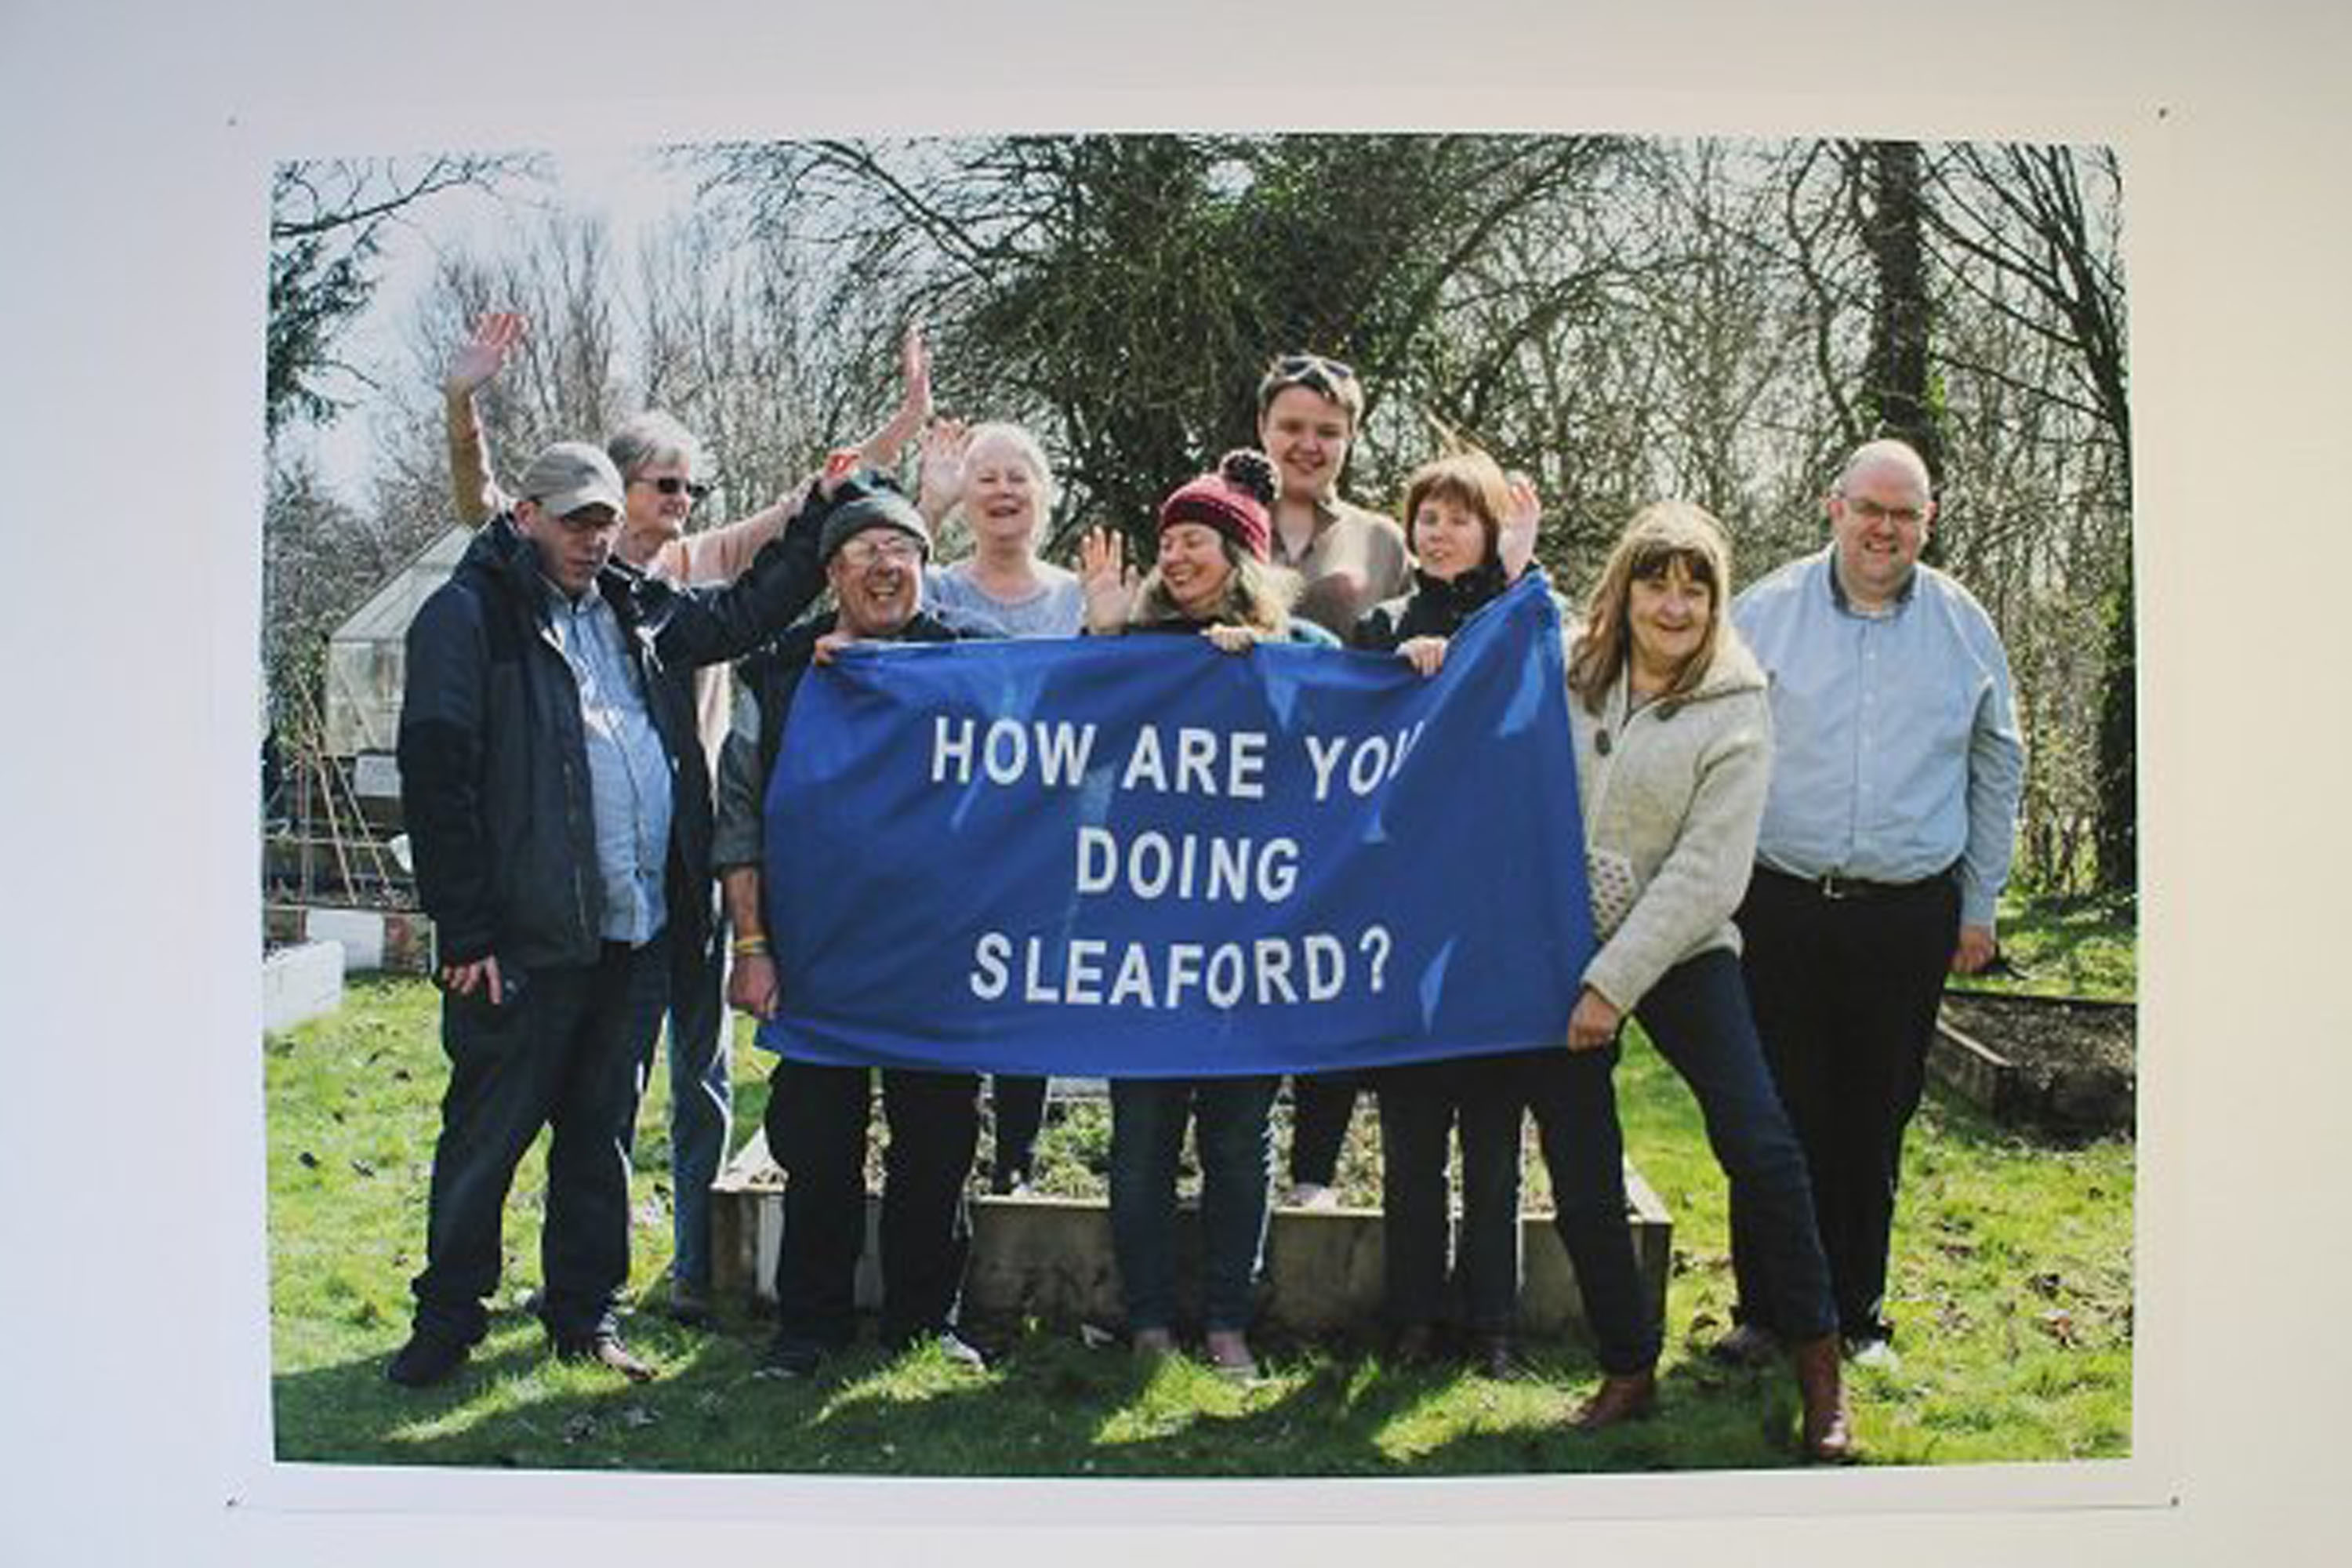 How are you doing Sleaford?